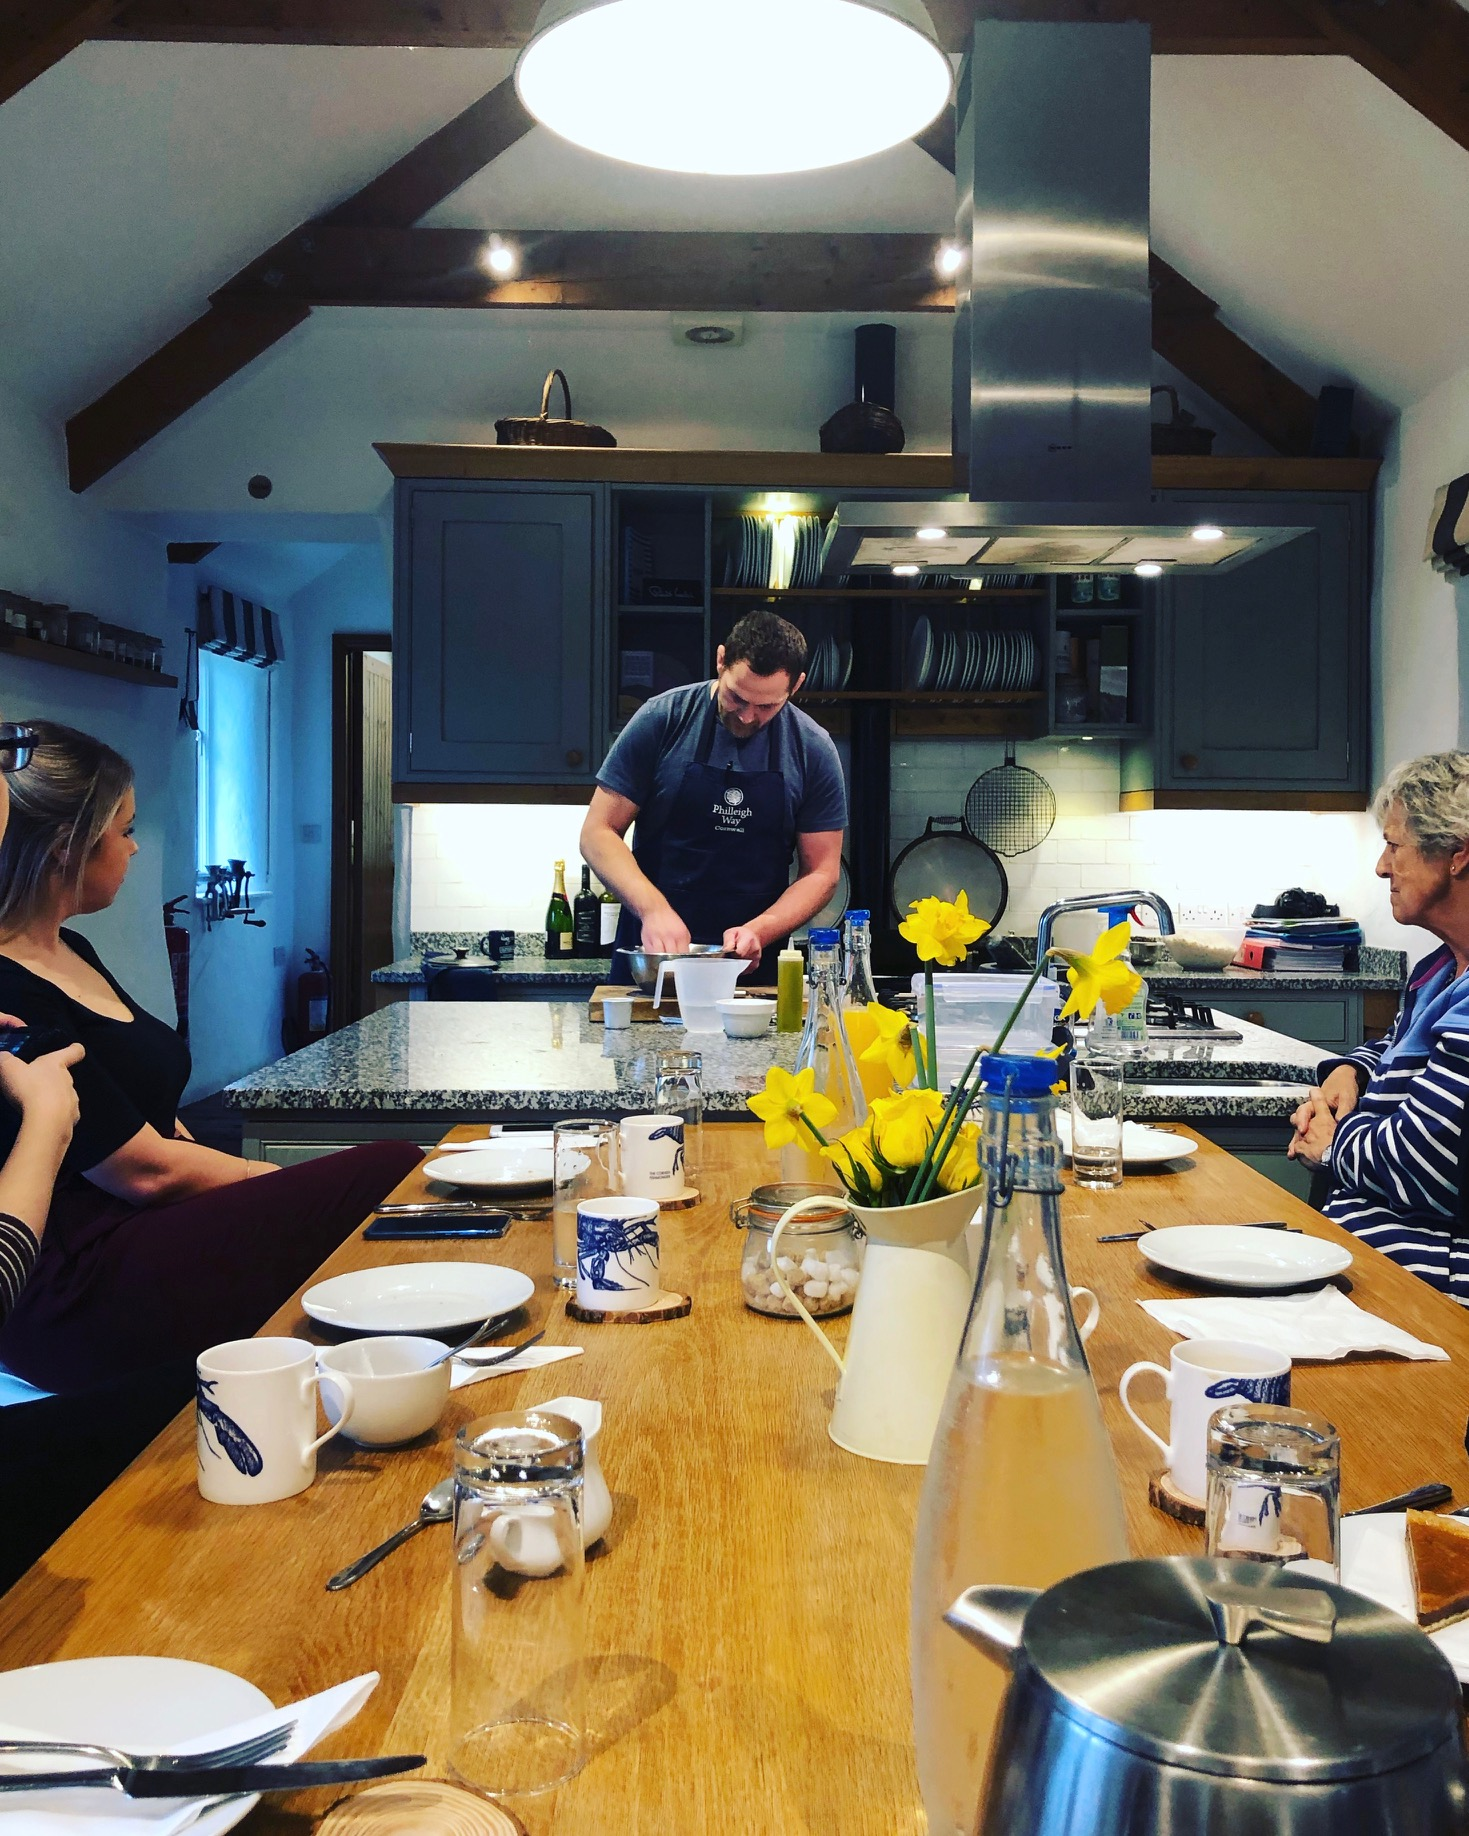 cornwall cookery class cornwall cookery lesson vegetarian cooking cornwall